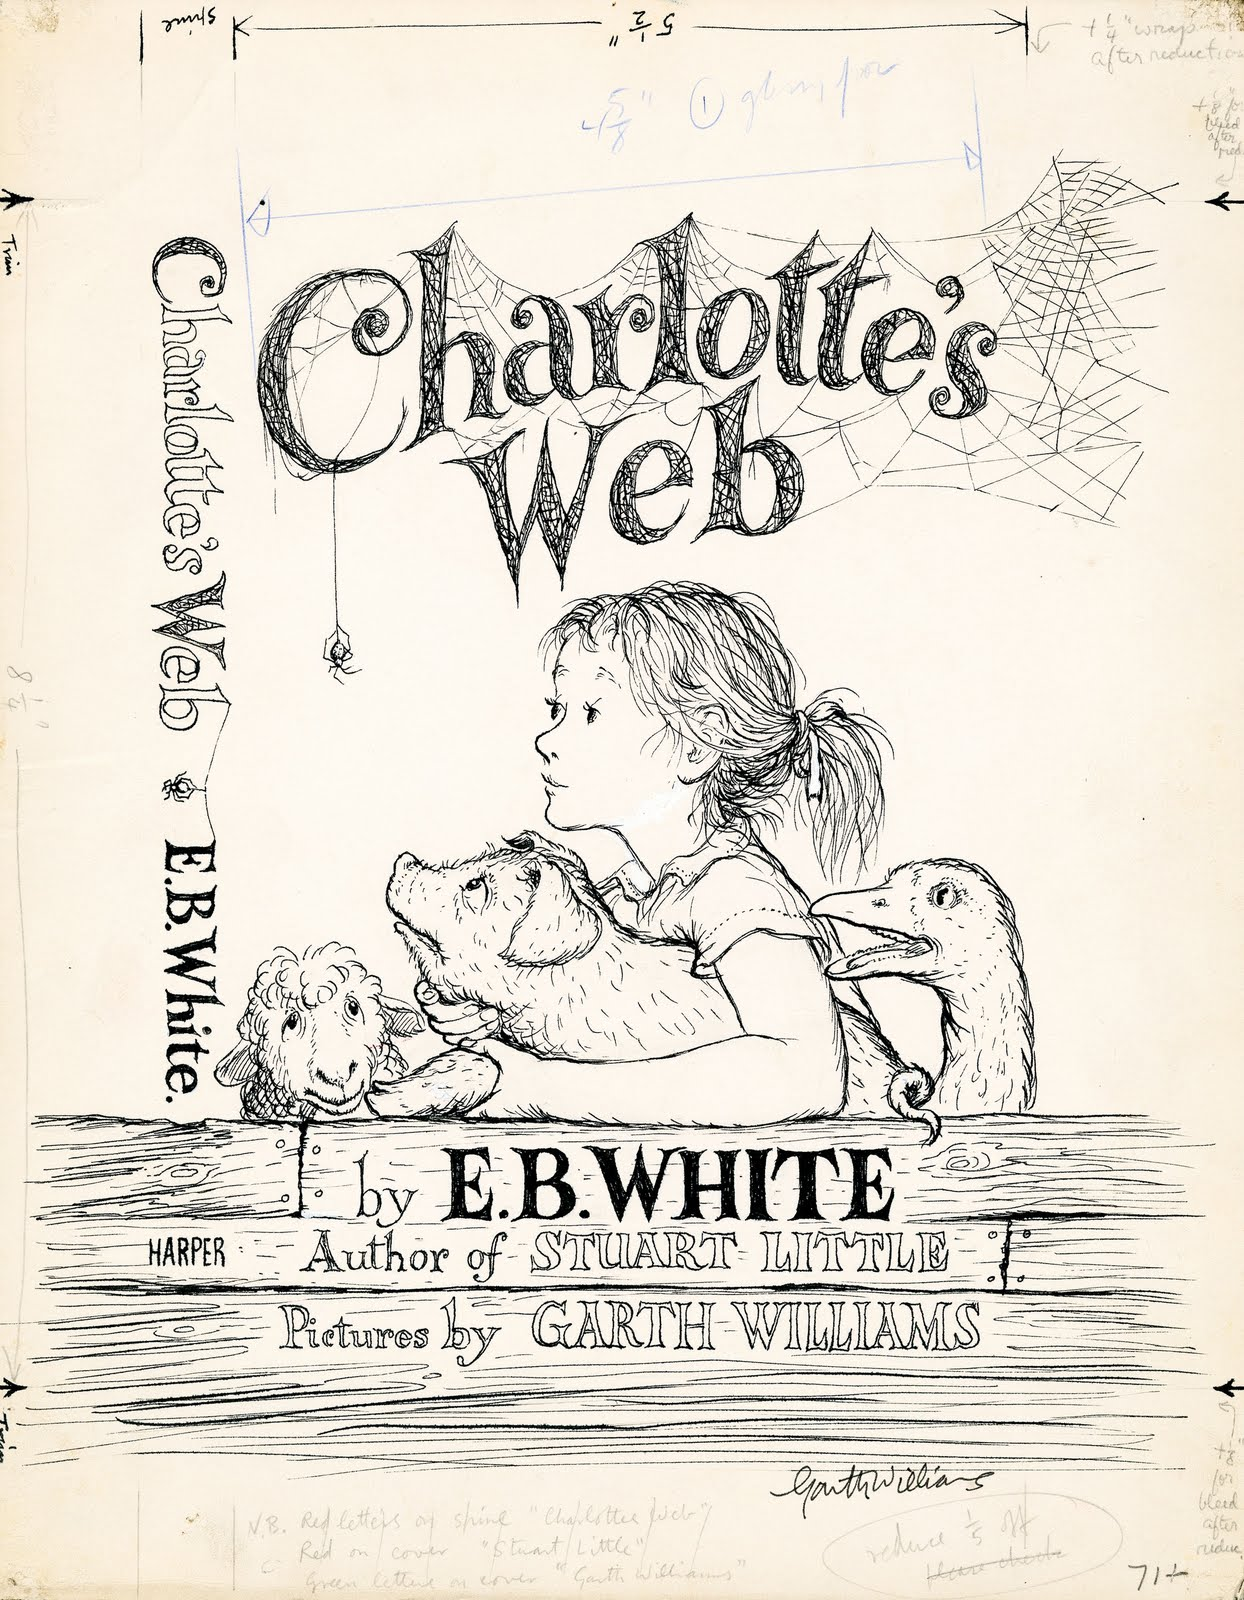 Charlotte S Web Garth Williams